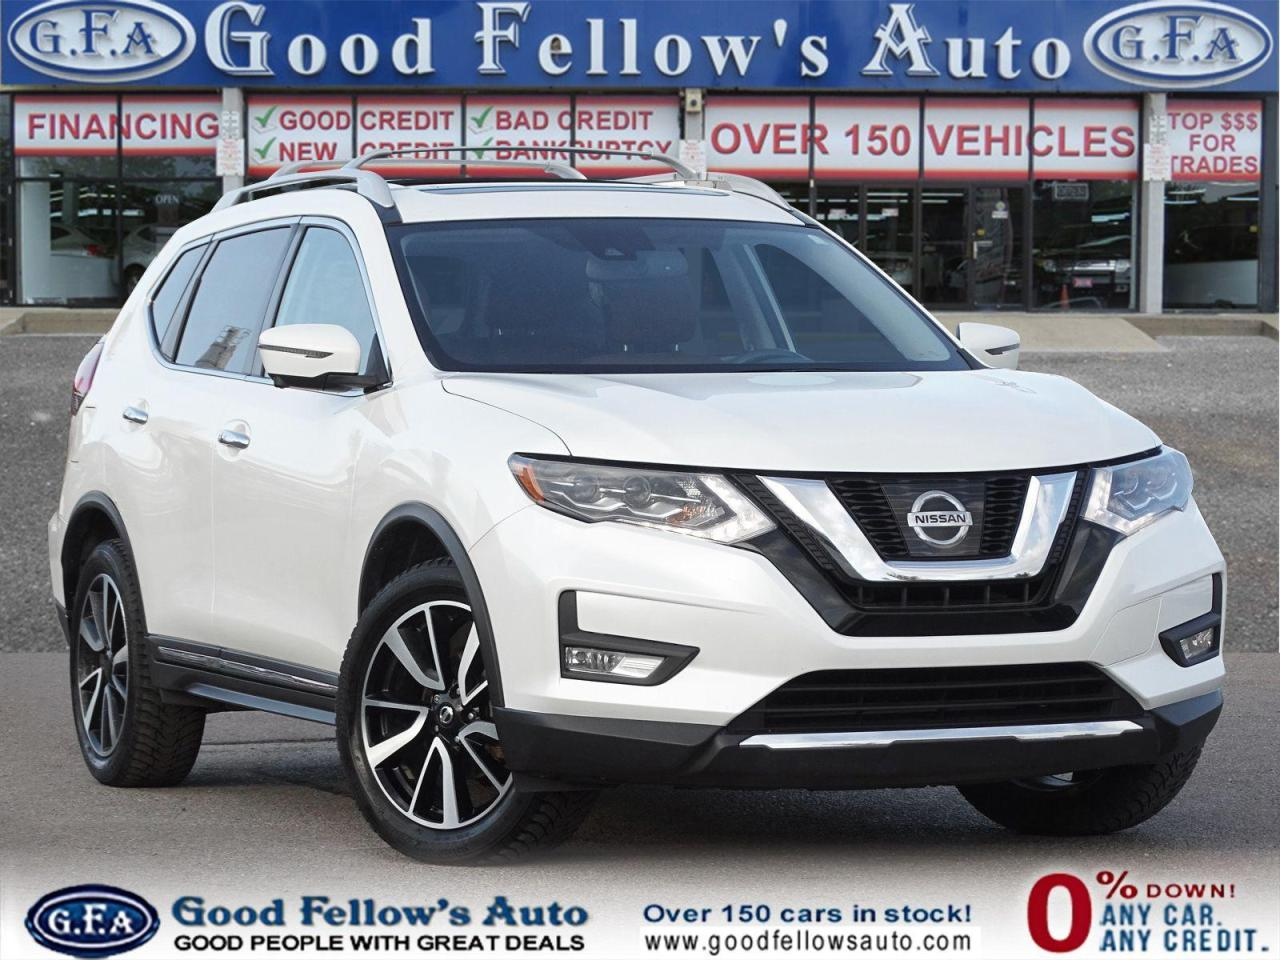 used 2017 Nissan Rogue car, priced at $16,400